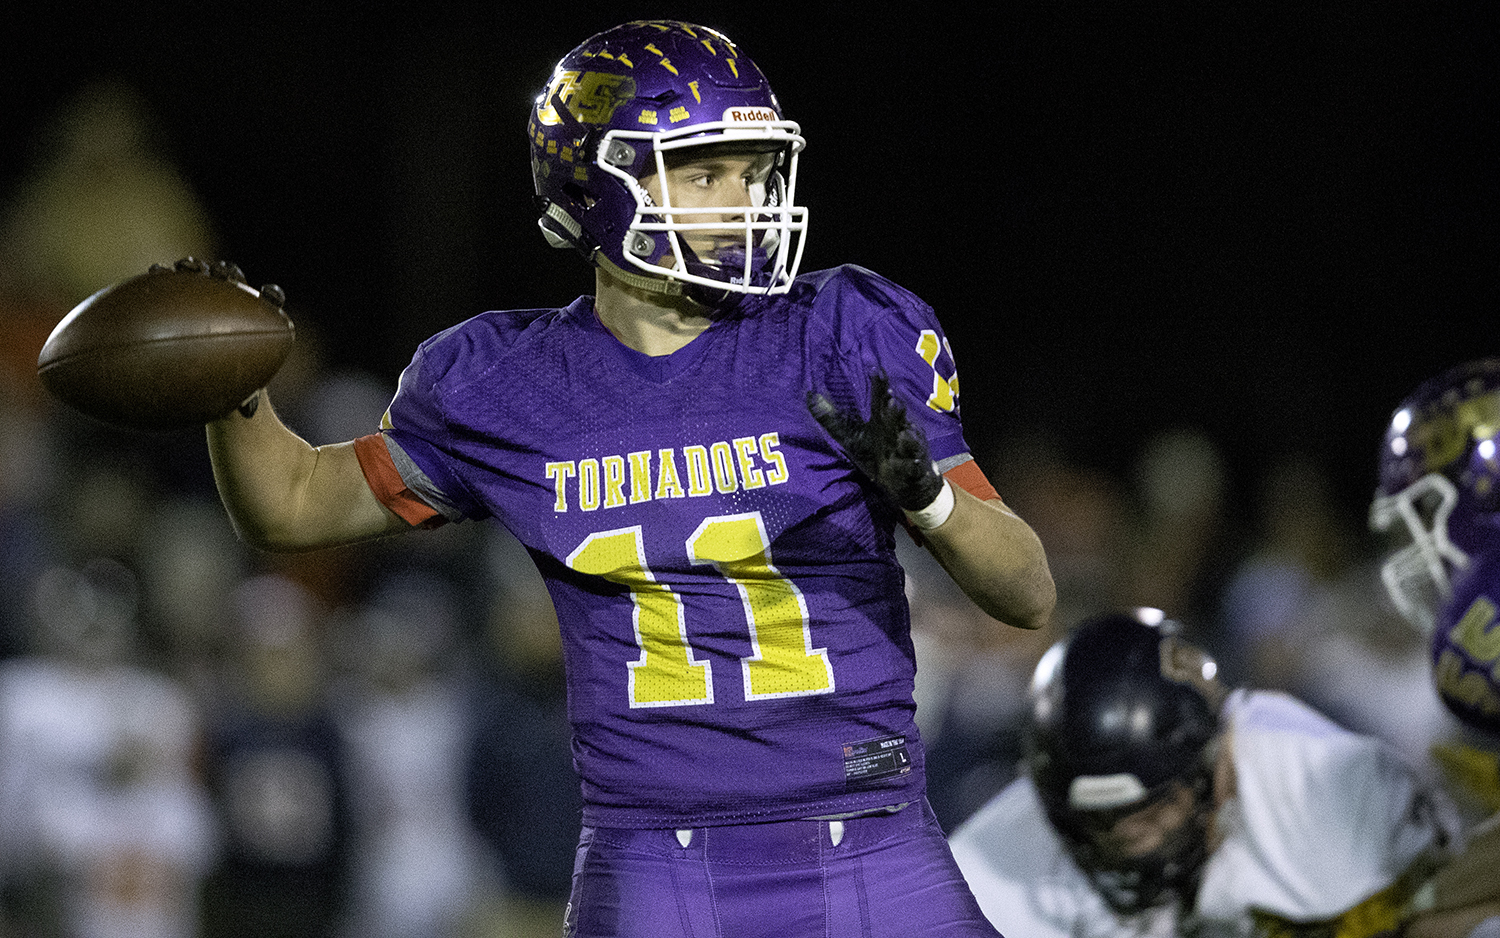 Taylorville's Brandon Odam throws a pass against Rochester during the Class 4A quarterfinals in Taylorville Saturday, Nov. 10, 2018. [Ted Schurter/The State Journal-Register]